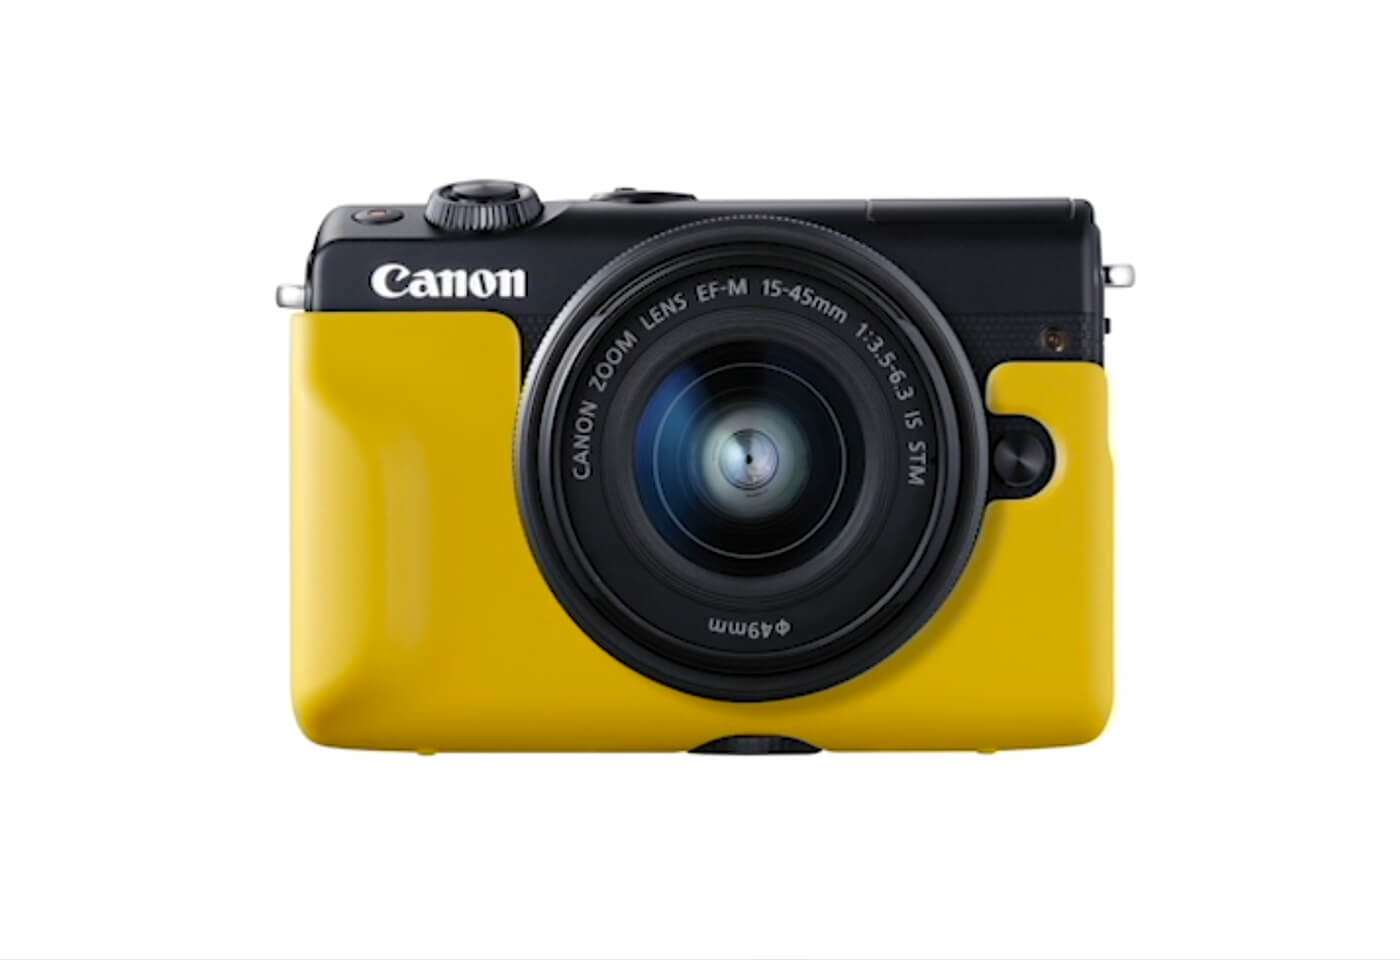 Image of EOS M100 in yellow case